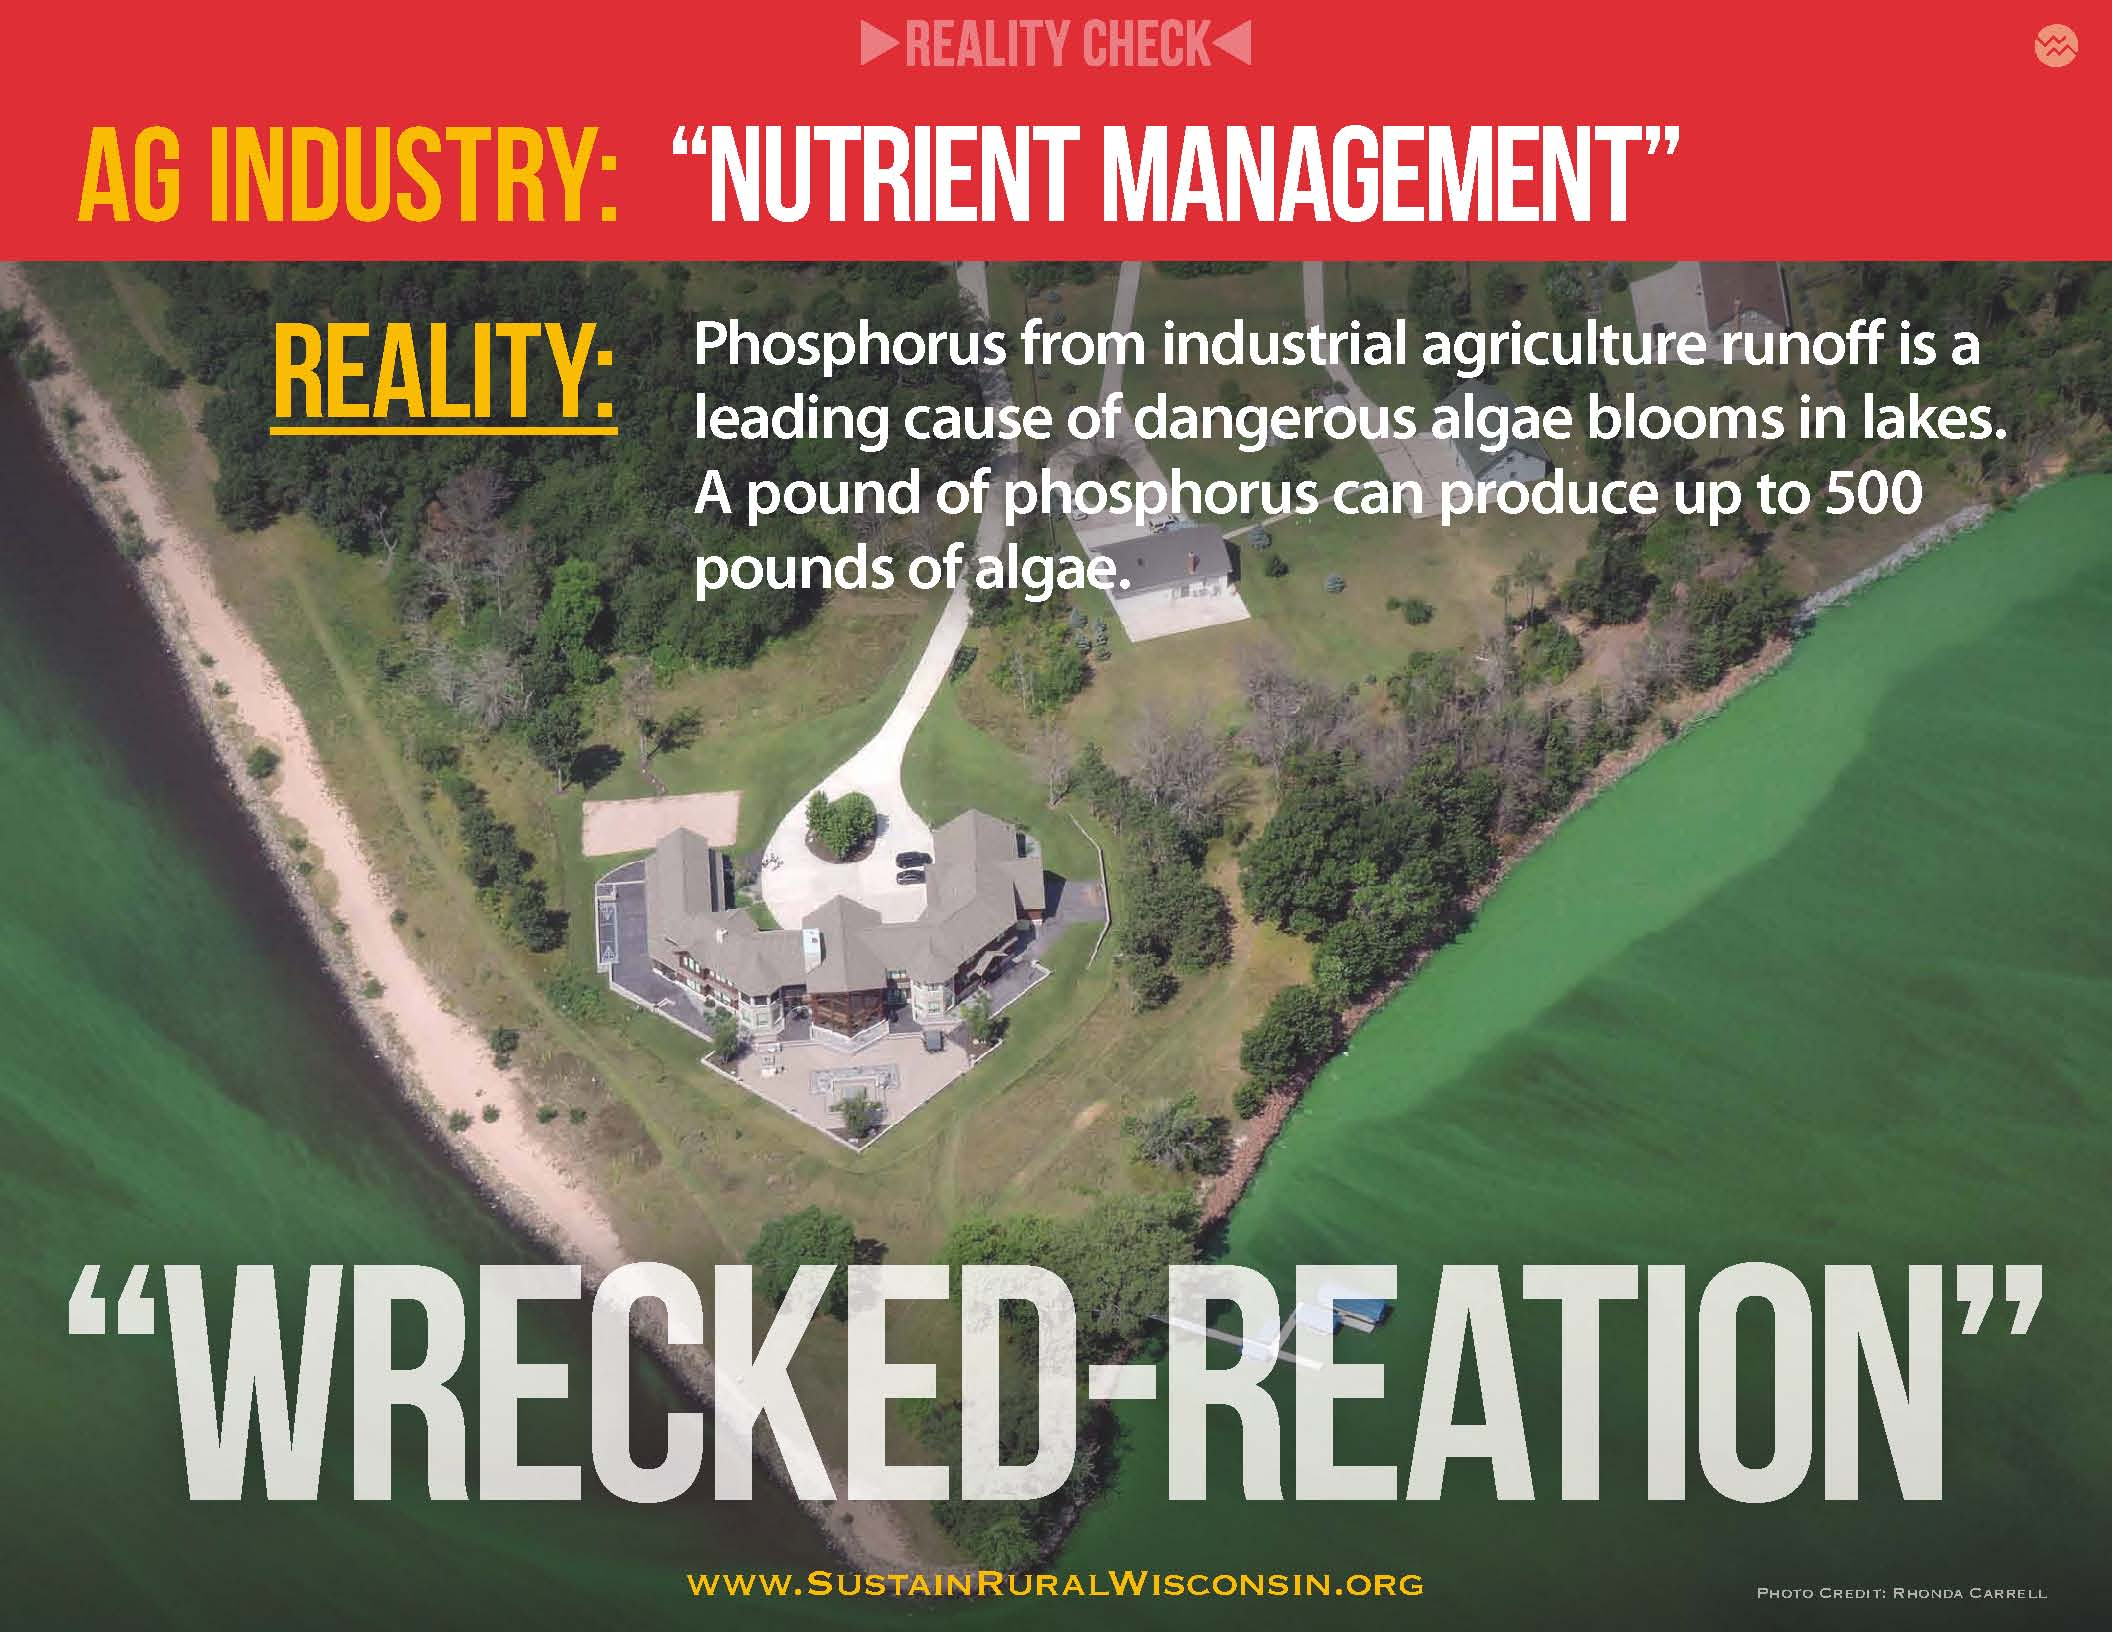 RC-SUSTAIN_RURAL_WISCONSIN OK web_Page_21.jpg